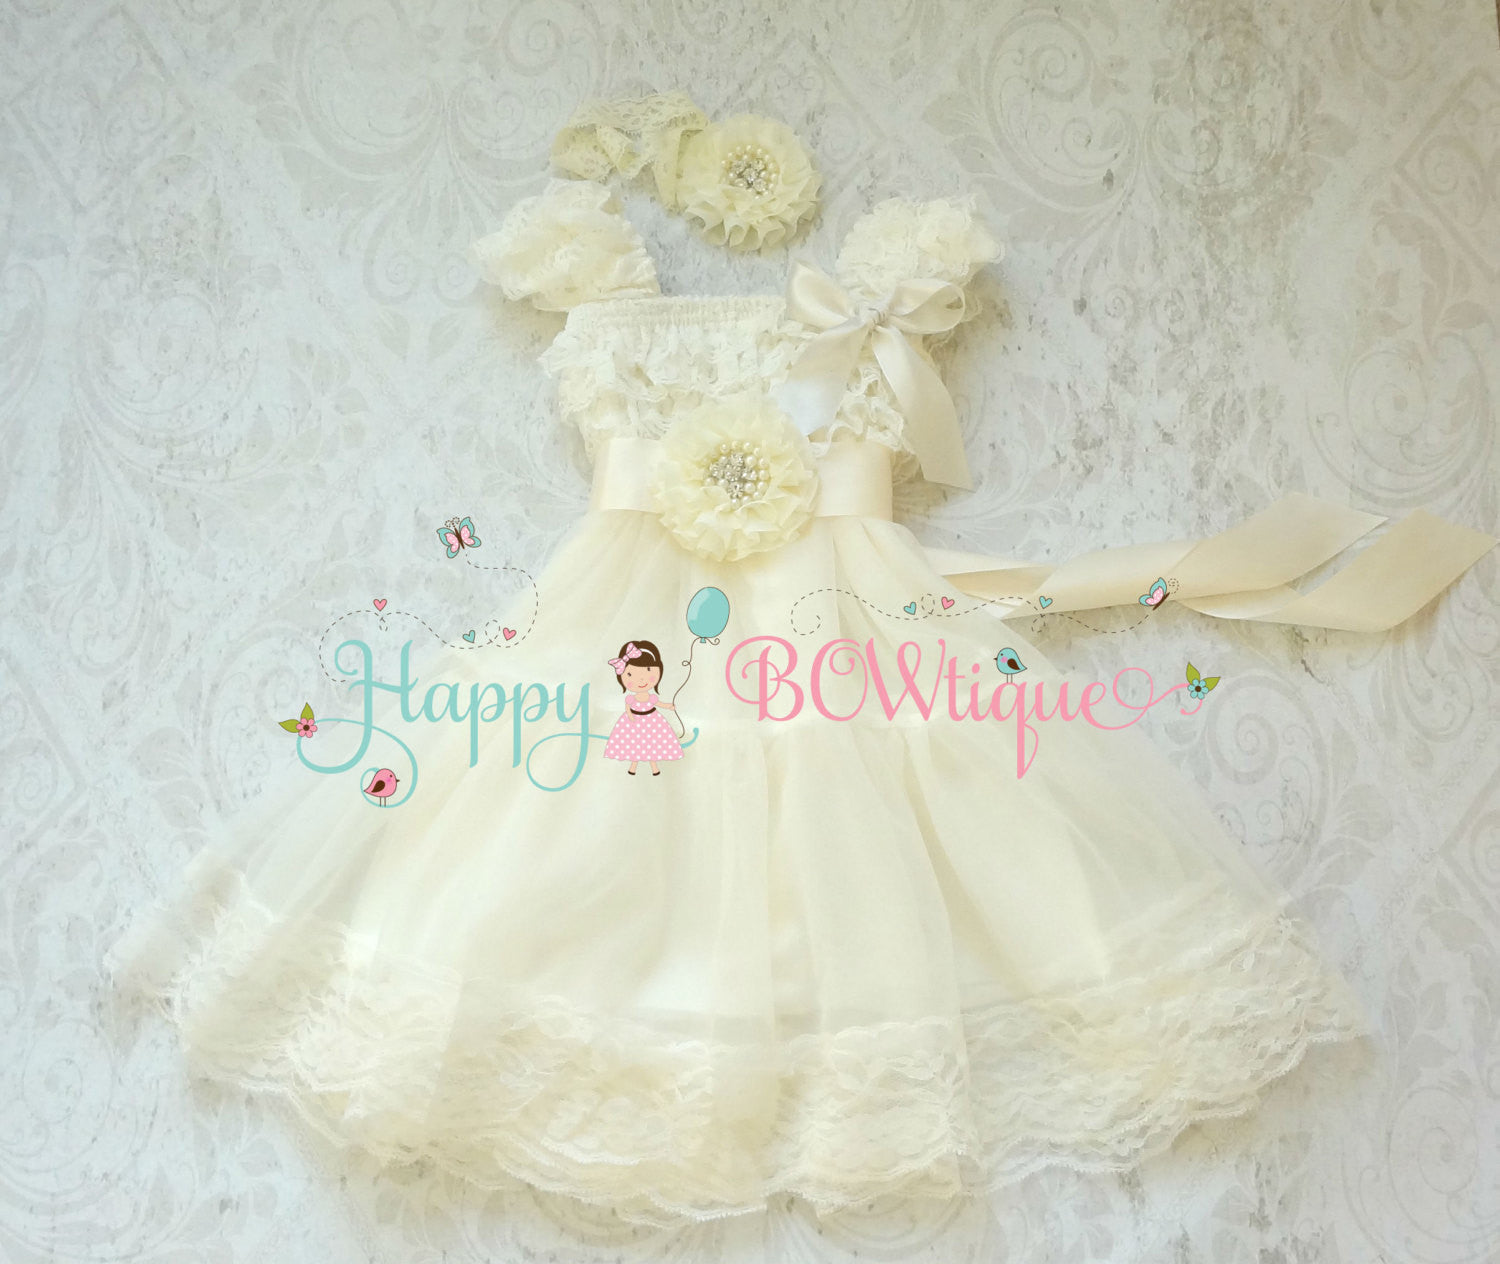 Rustic Ivory Chiffon Lace Dress Girls - Happy BOWtique - children's clothing, Baby Girl clothing